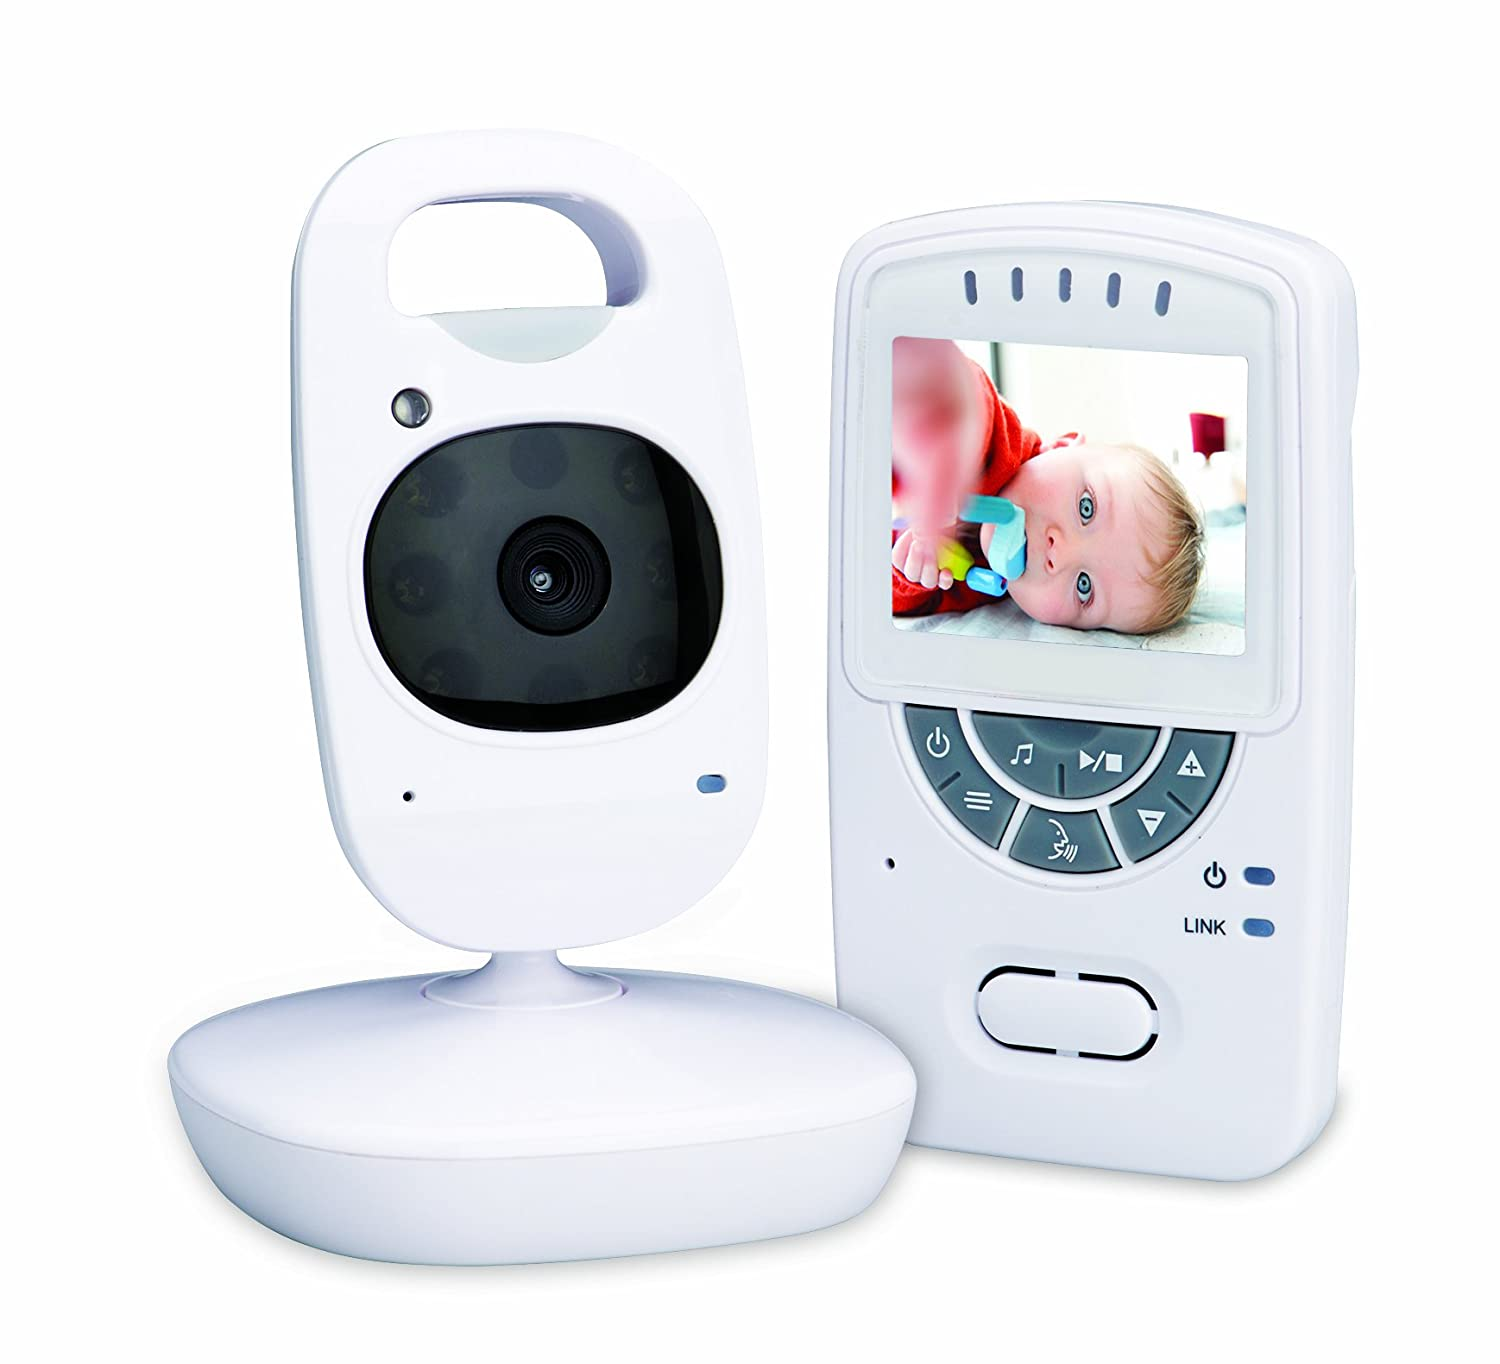 Lorex BB2411 2.4-Inch Sweet Peek Video Baby Monitor with IR Night Vision and Zoom ($79.00)